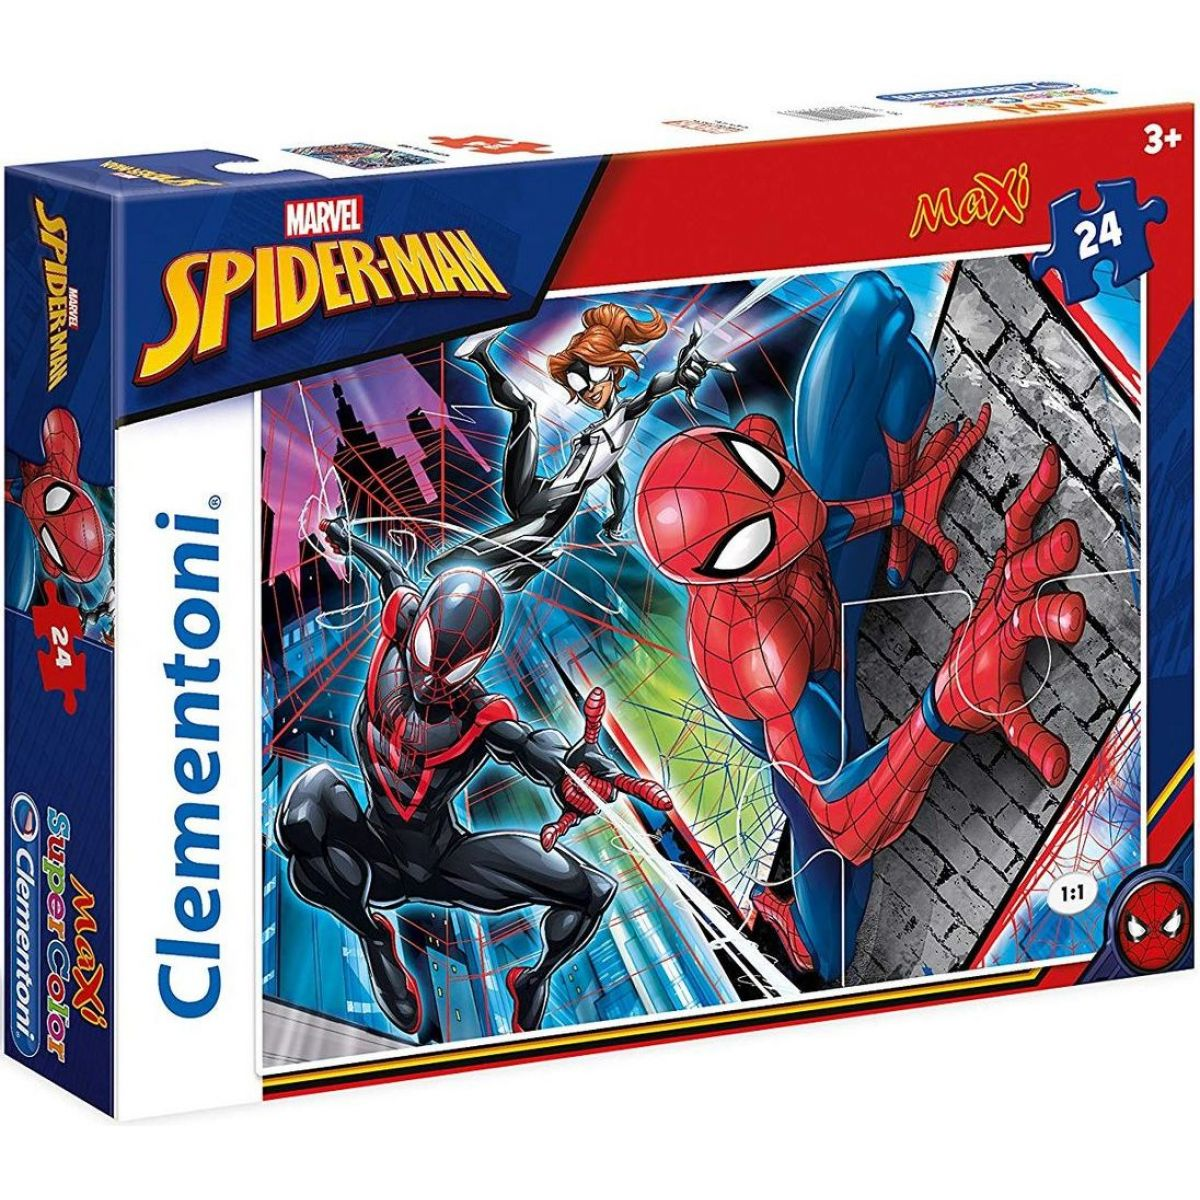 Clementoni Spiderman Supercolor Puzzle Maxi 24 dílků